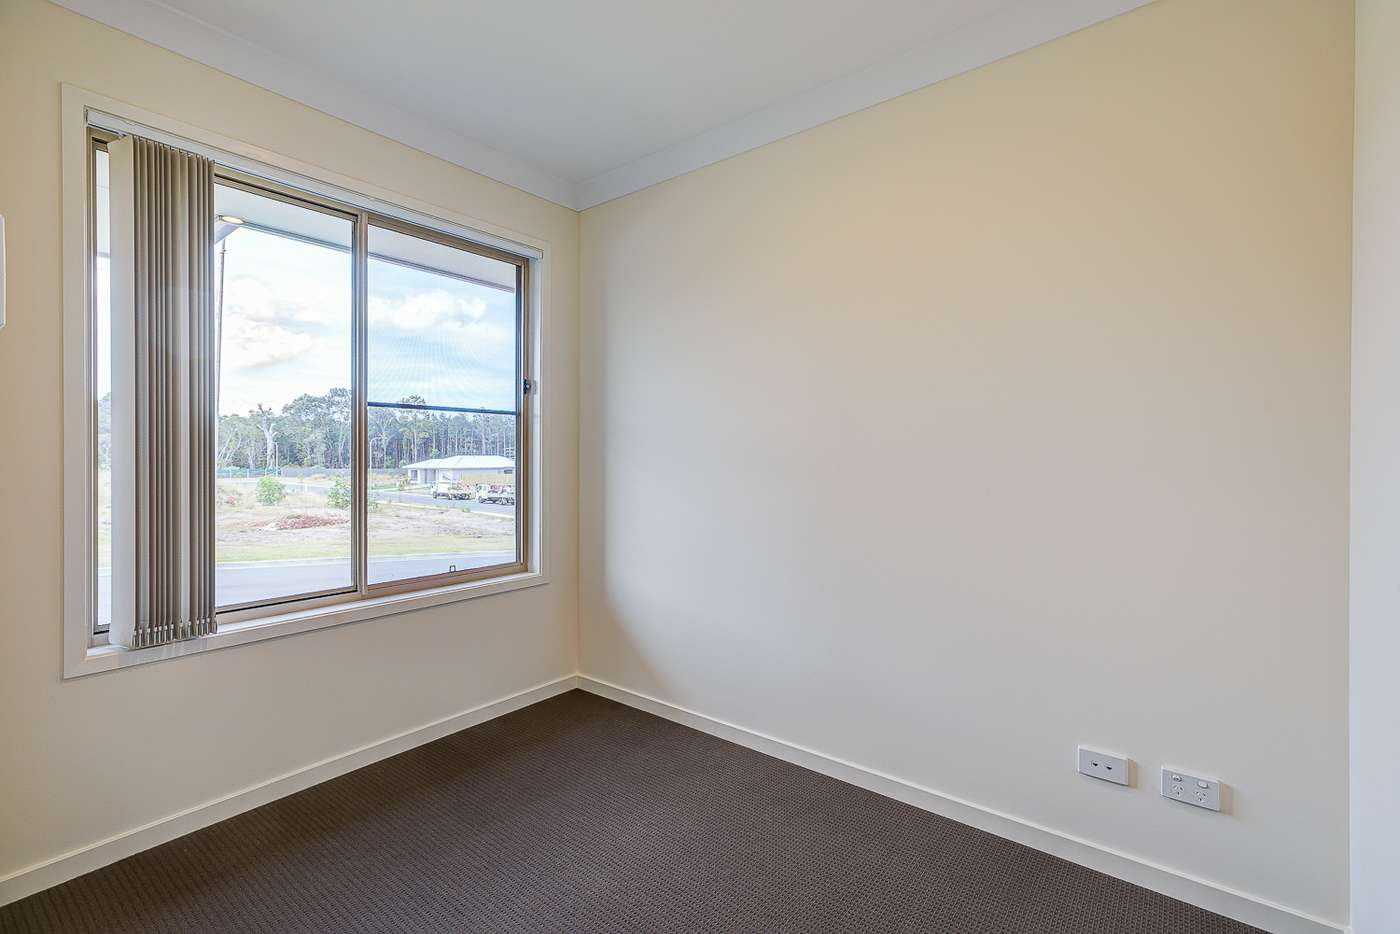 Seventh view of Homely house listing, 15 King Street, Coomera QLD 4209